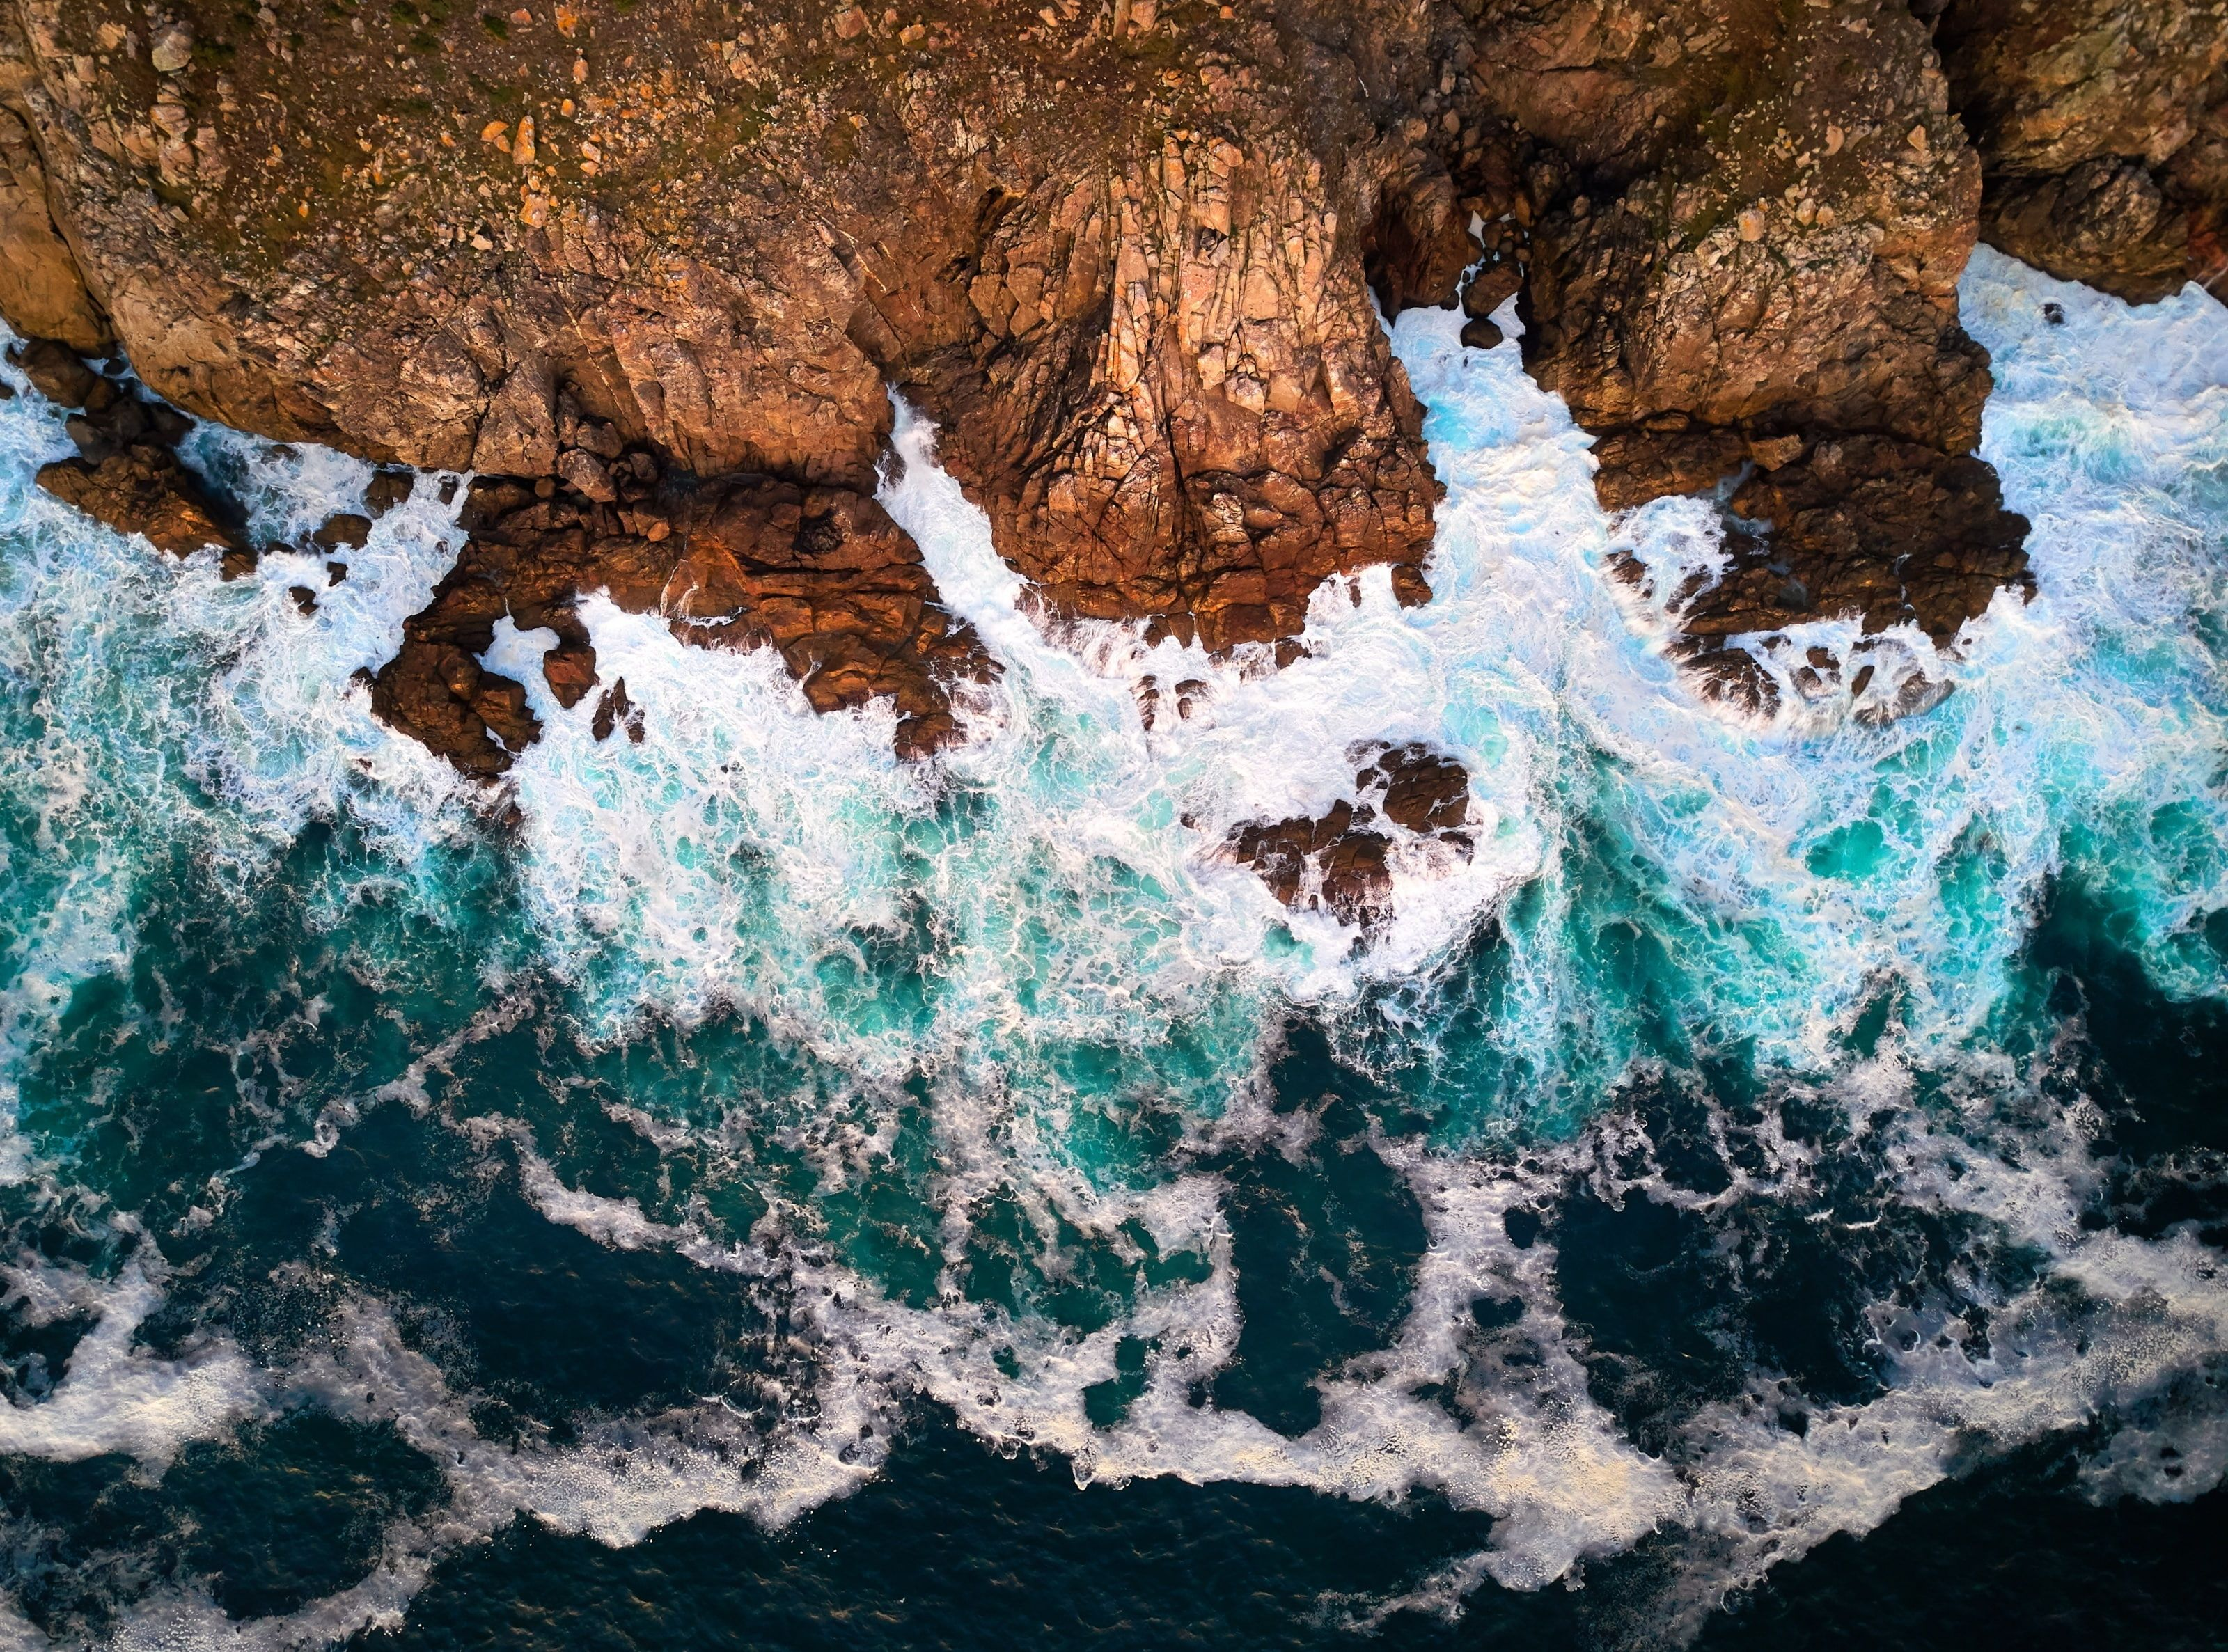 Cape Finisterre Atlantic Ocean Galicia Spain Water Waves Nature Beach Ocean View Nature Scenery Aerial Photography Drone Surfing Waves Aerial Drone